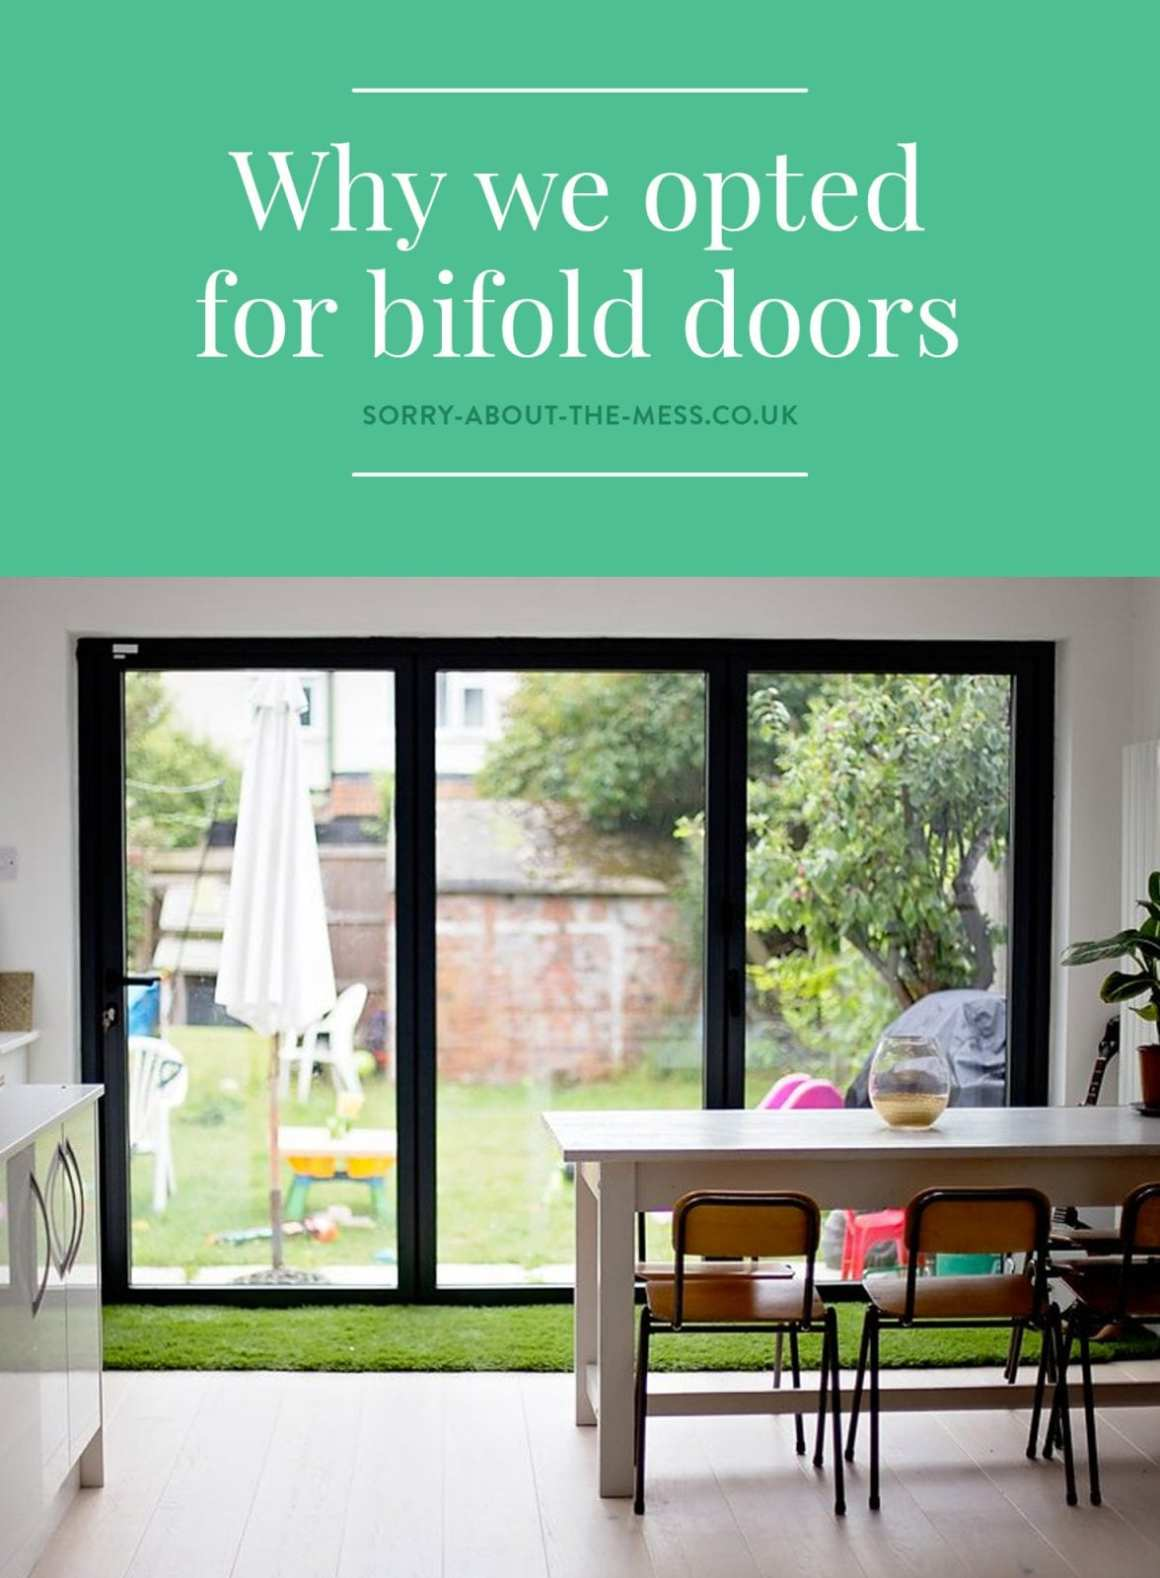 Whast you need to consider when you are thinking of purchasing bifold doors